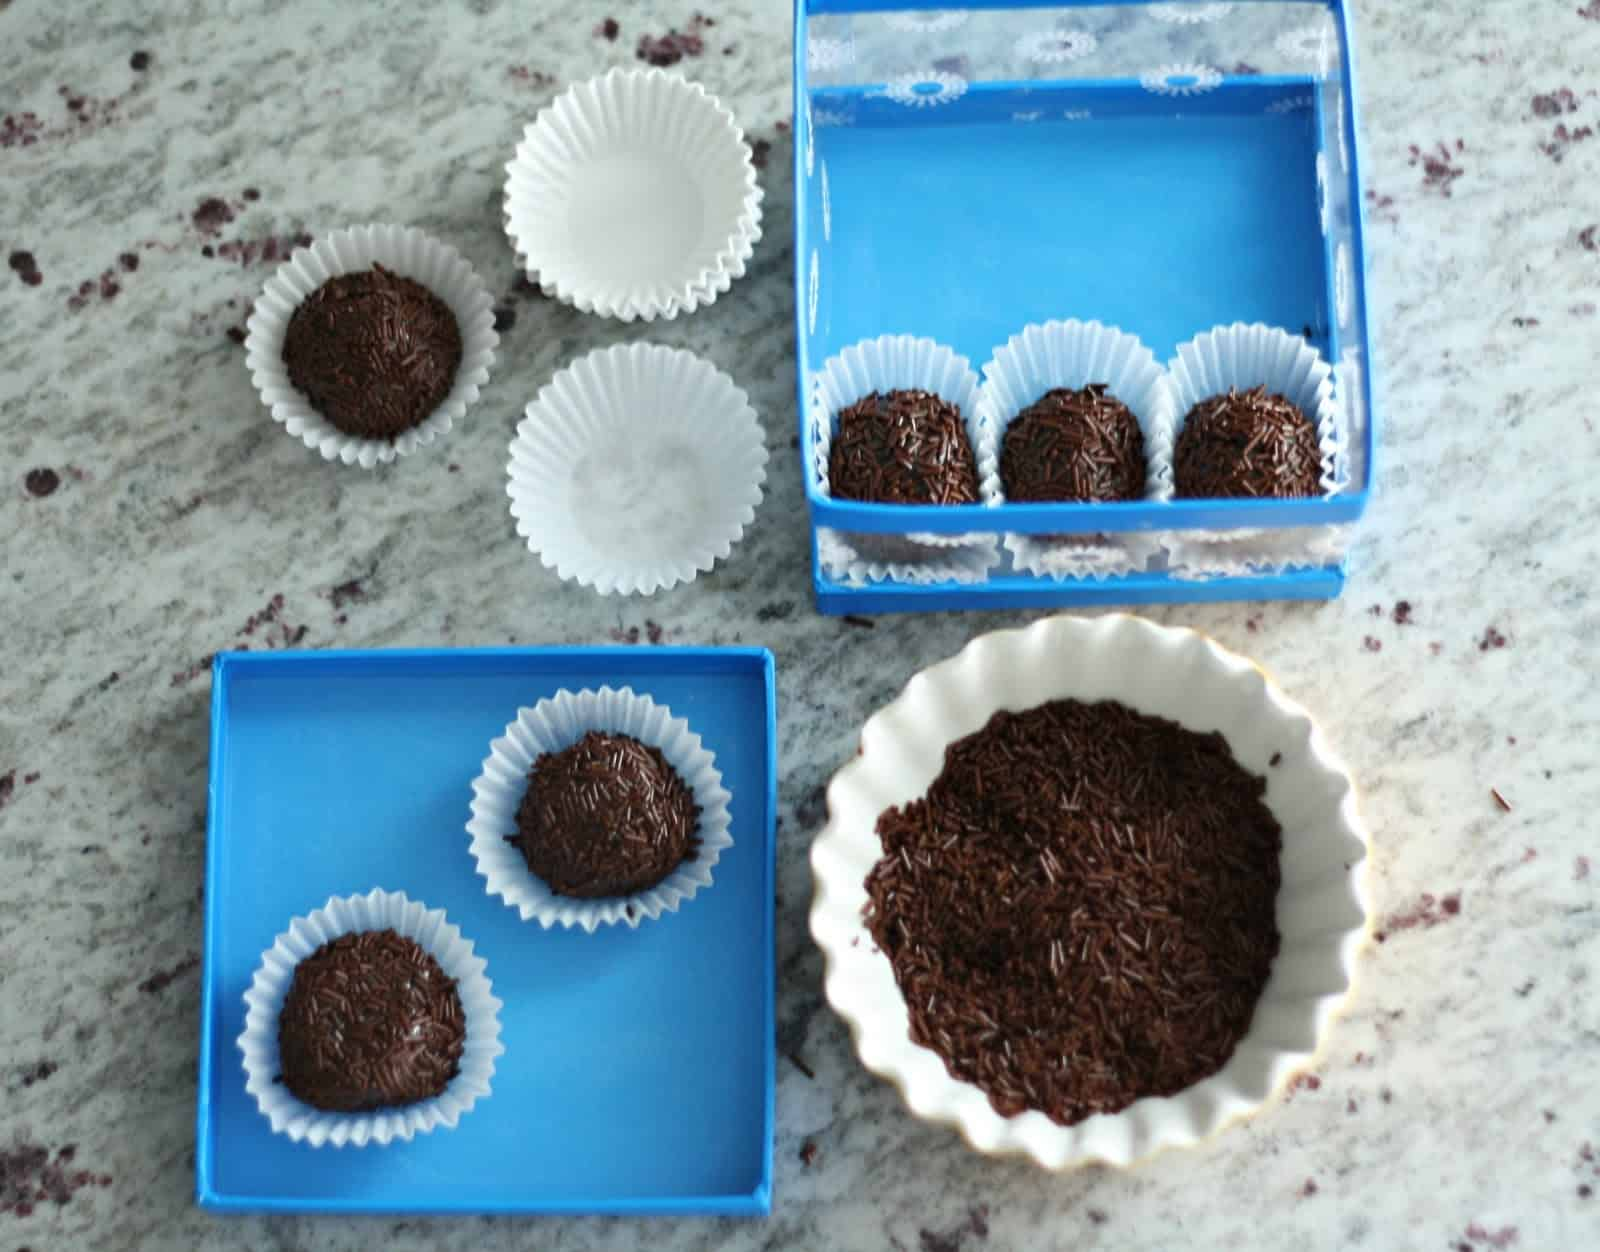 Learn how to make delicious brigadeiros - they are Brazilian chocolate truffles that will melt in your mouth. And they are so easy!